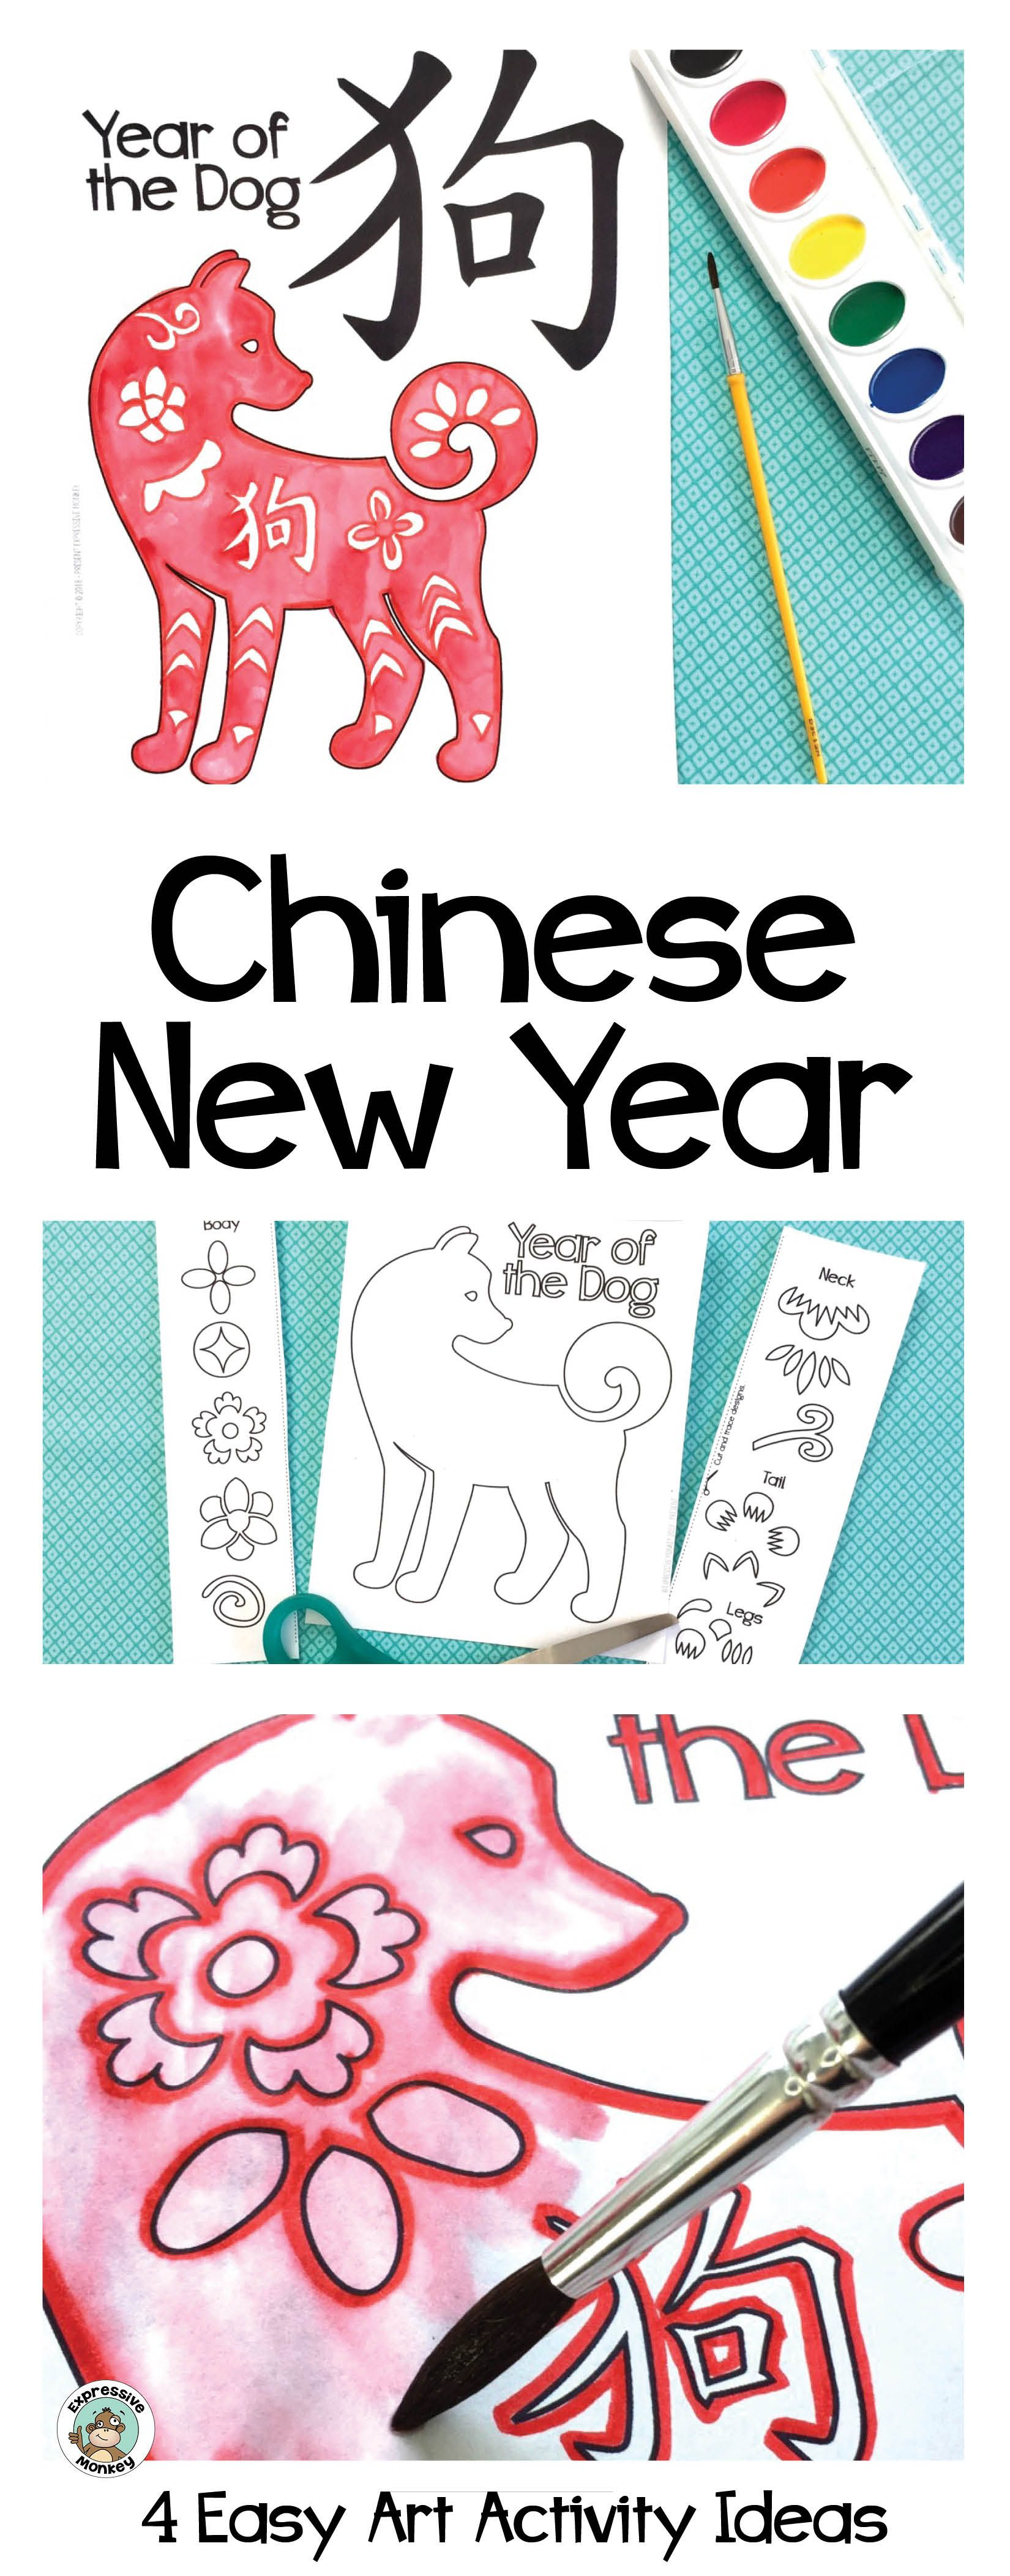 Celebrate the Chinese New Year by making a Year of the Dog craft. Add  Chinese